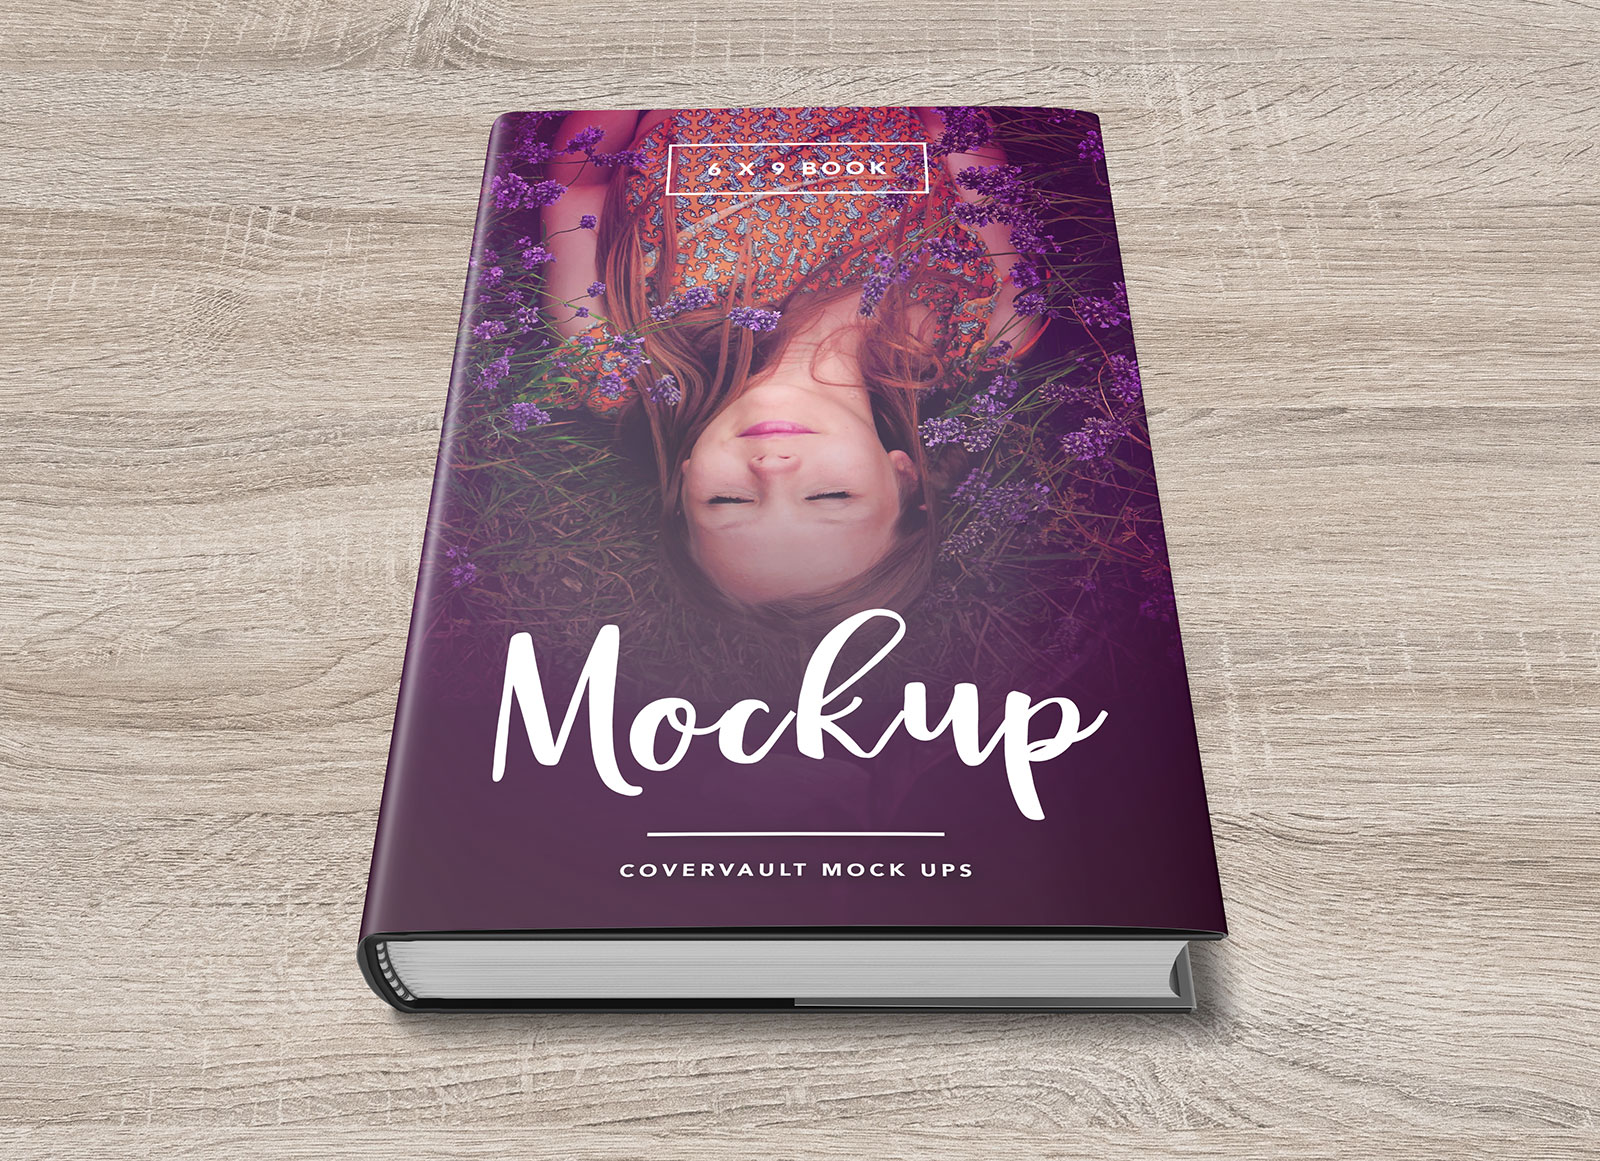 Free-Dust-Jacket-Perspective-Book-Mockup-PSD